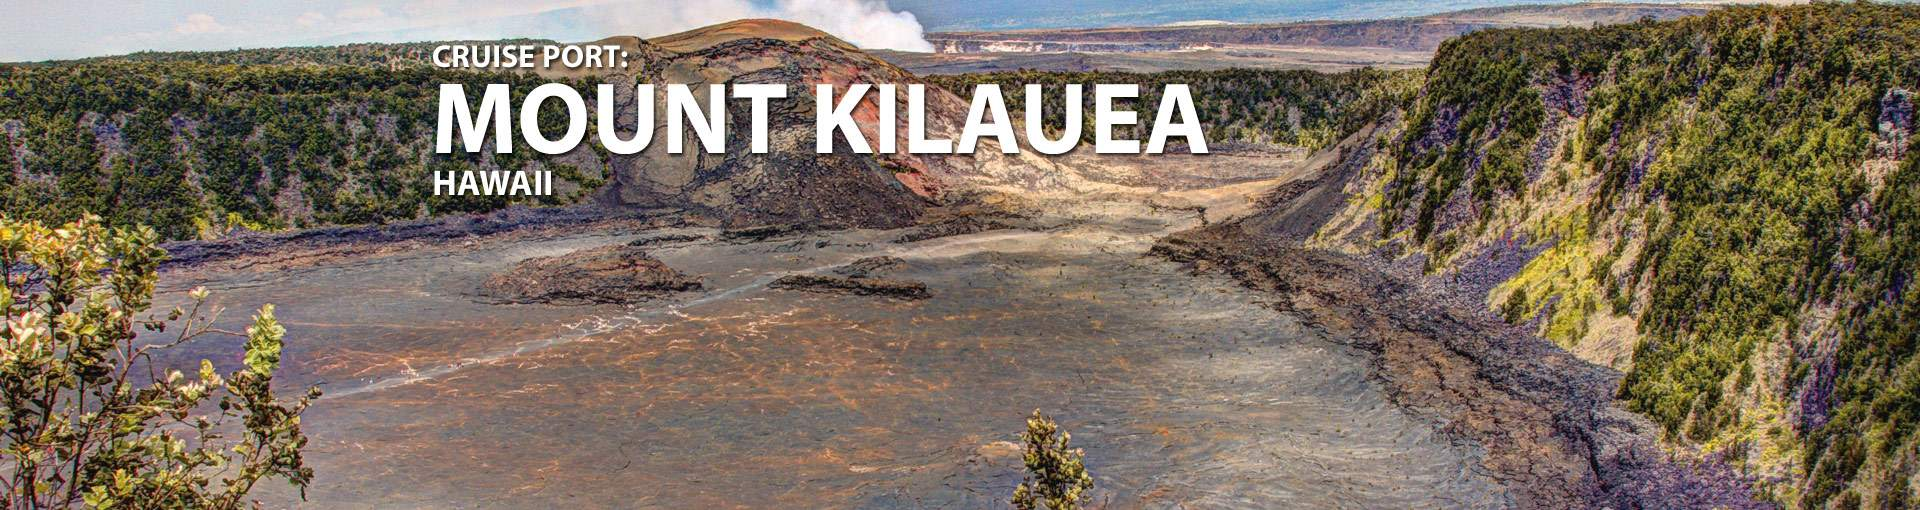 Mount Kilauea, Hawaii Cruise Port